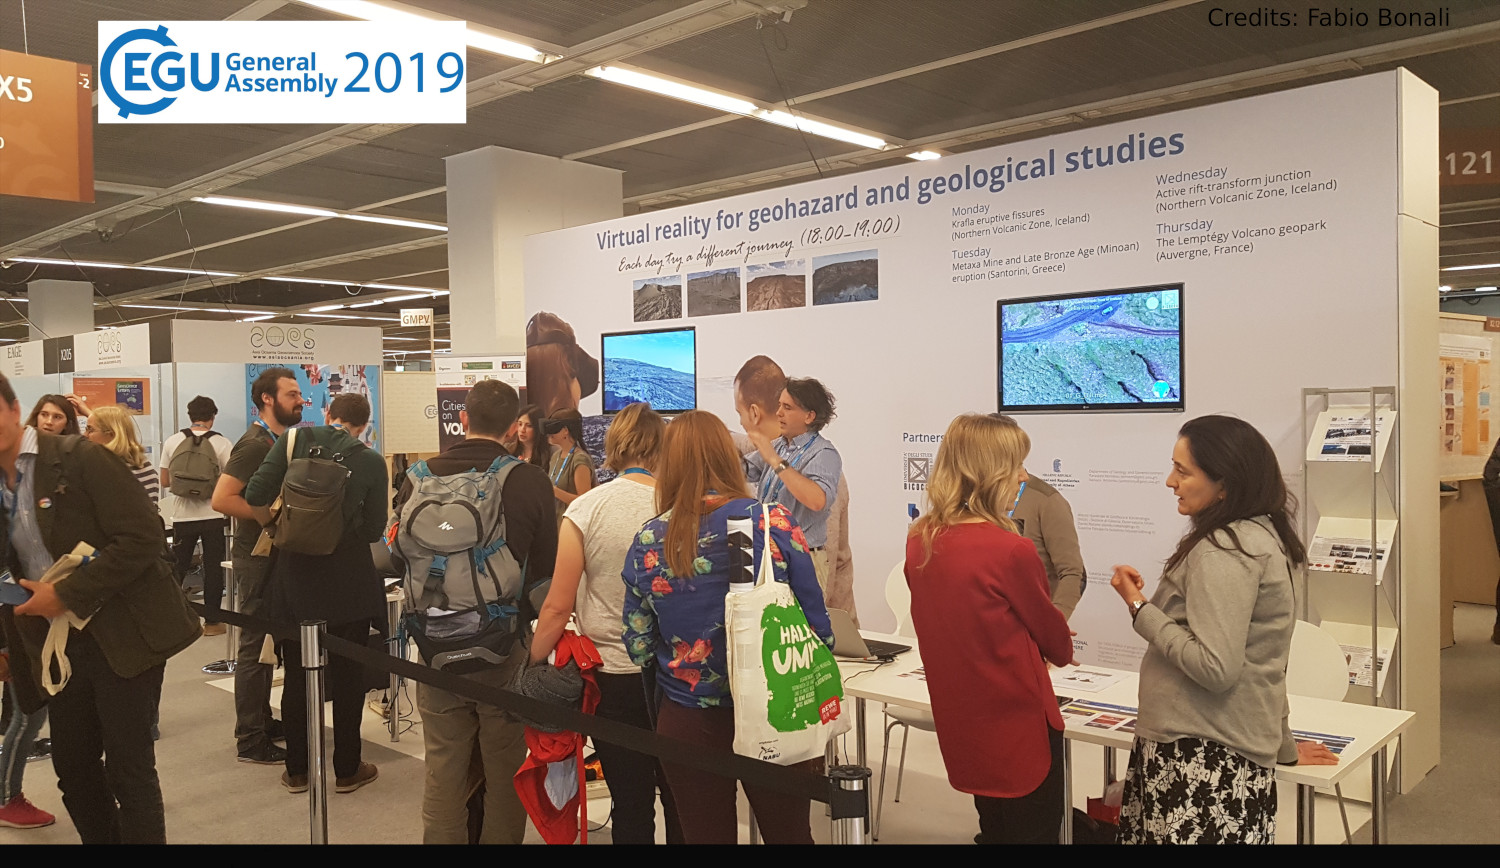 3DTELC at EGU 2019